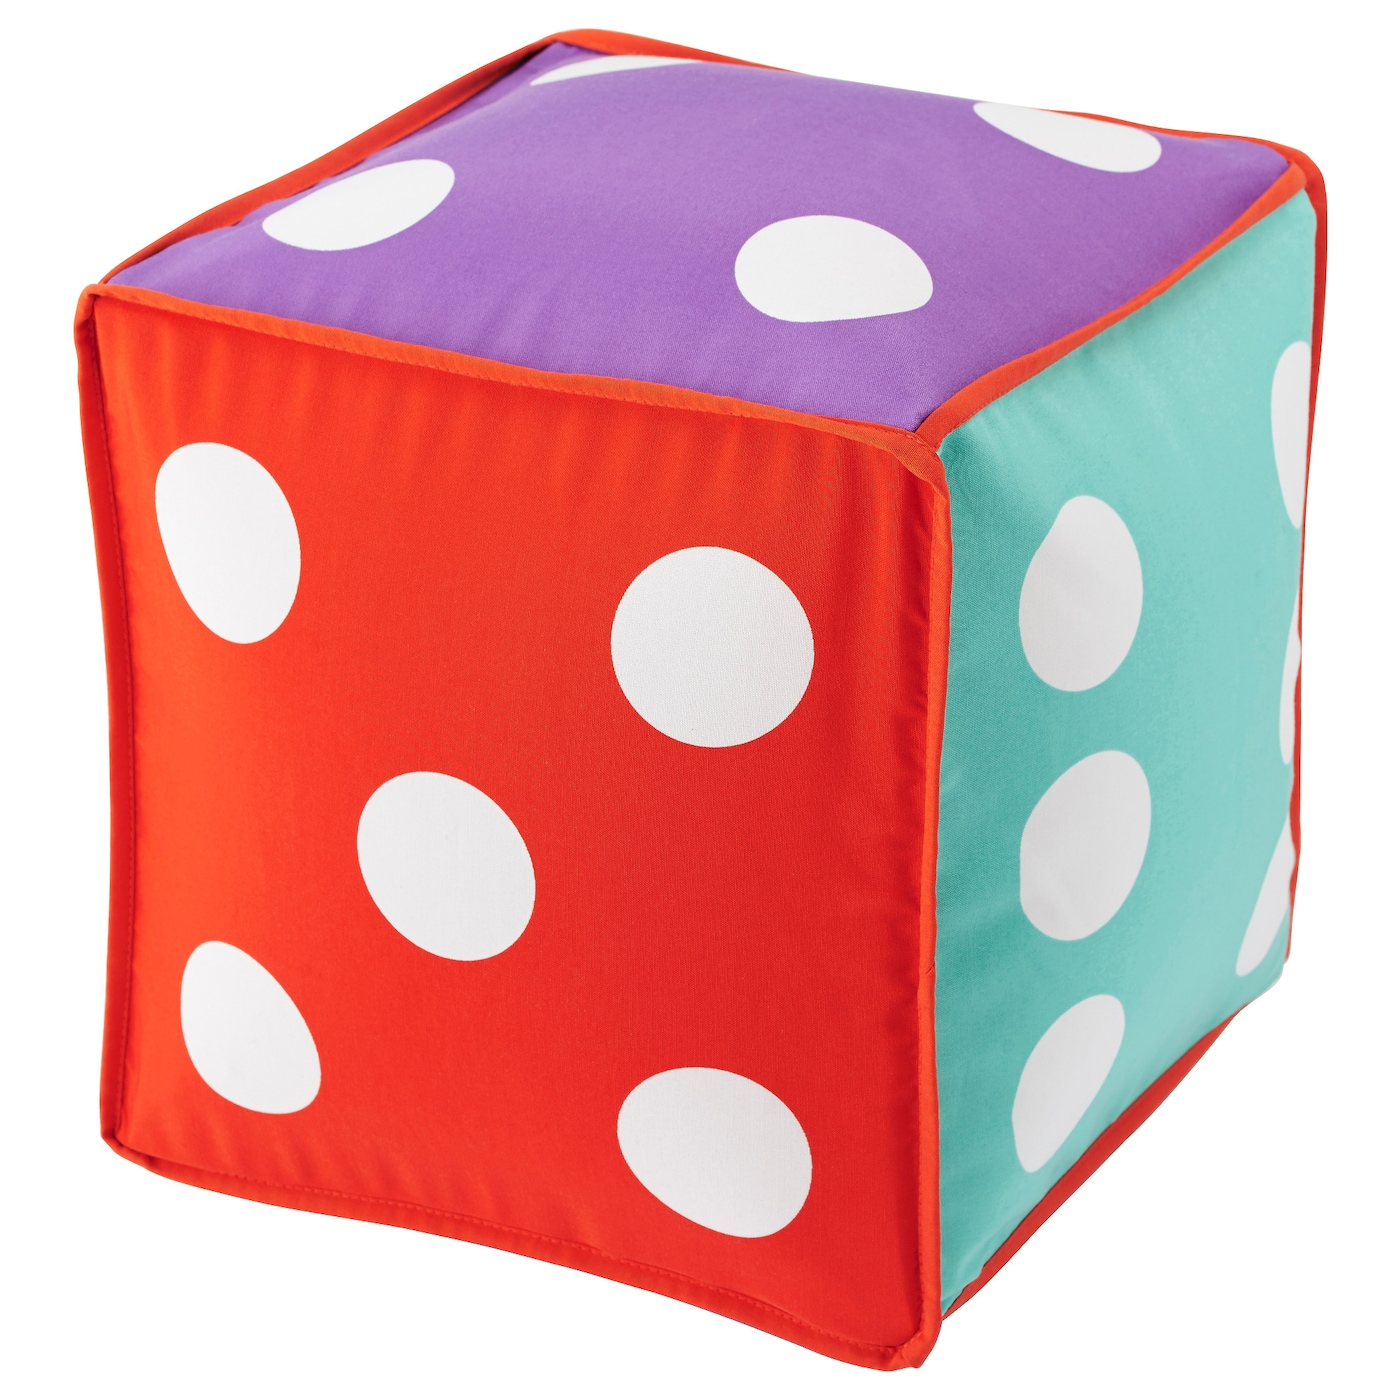 IKEA LATTJO dice Light and easy for your child to carry and play with. Easy to fold and store away.